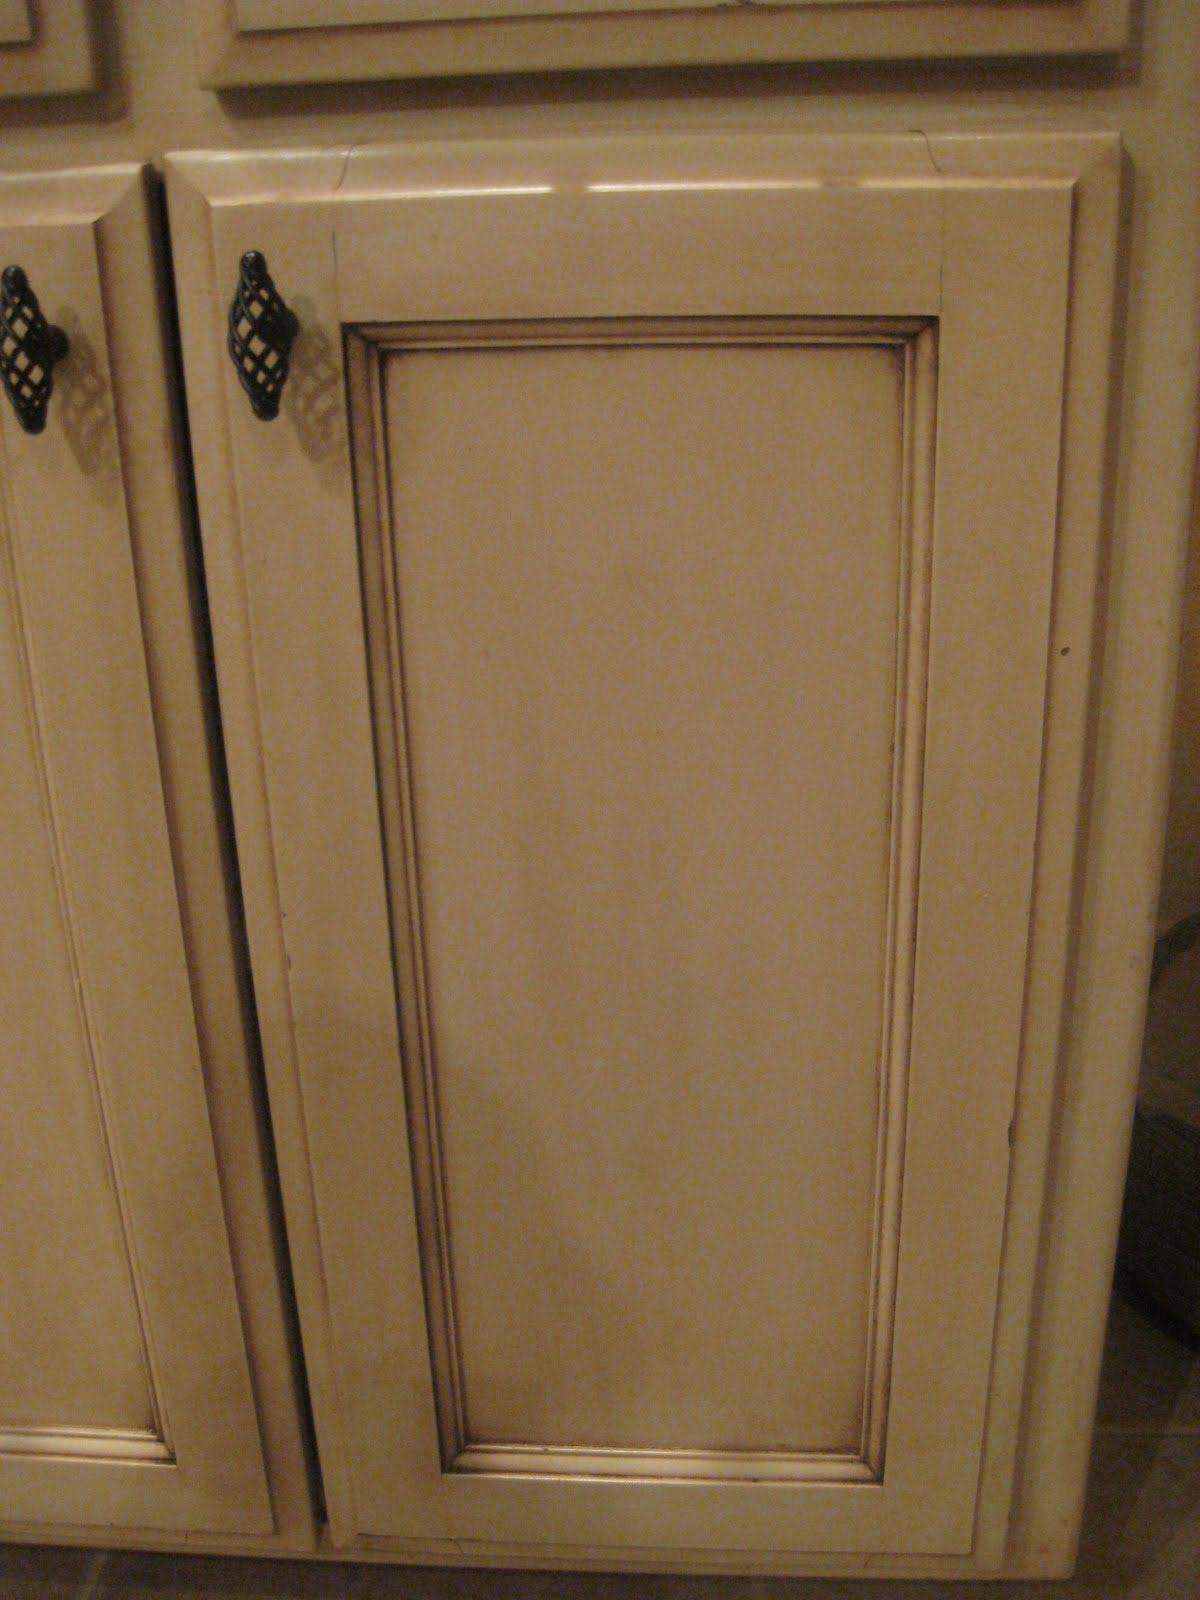 Glazing cabinets using Old Masters Gel Stain  DYI tips